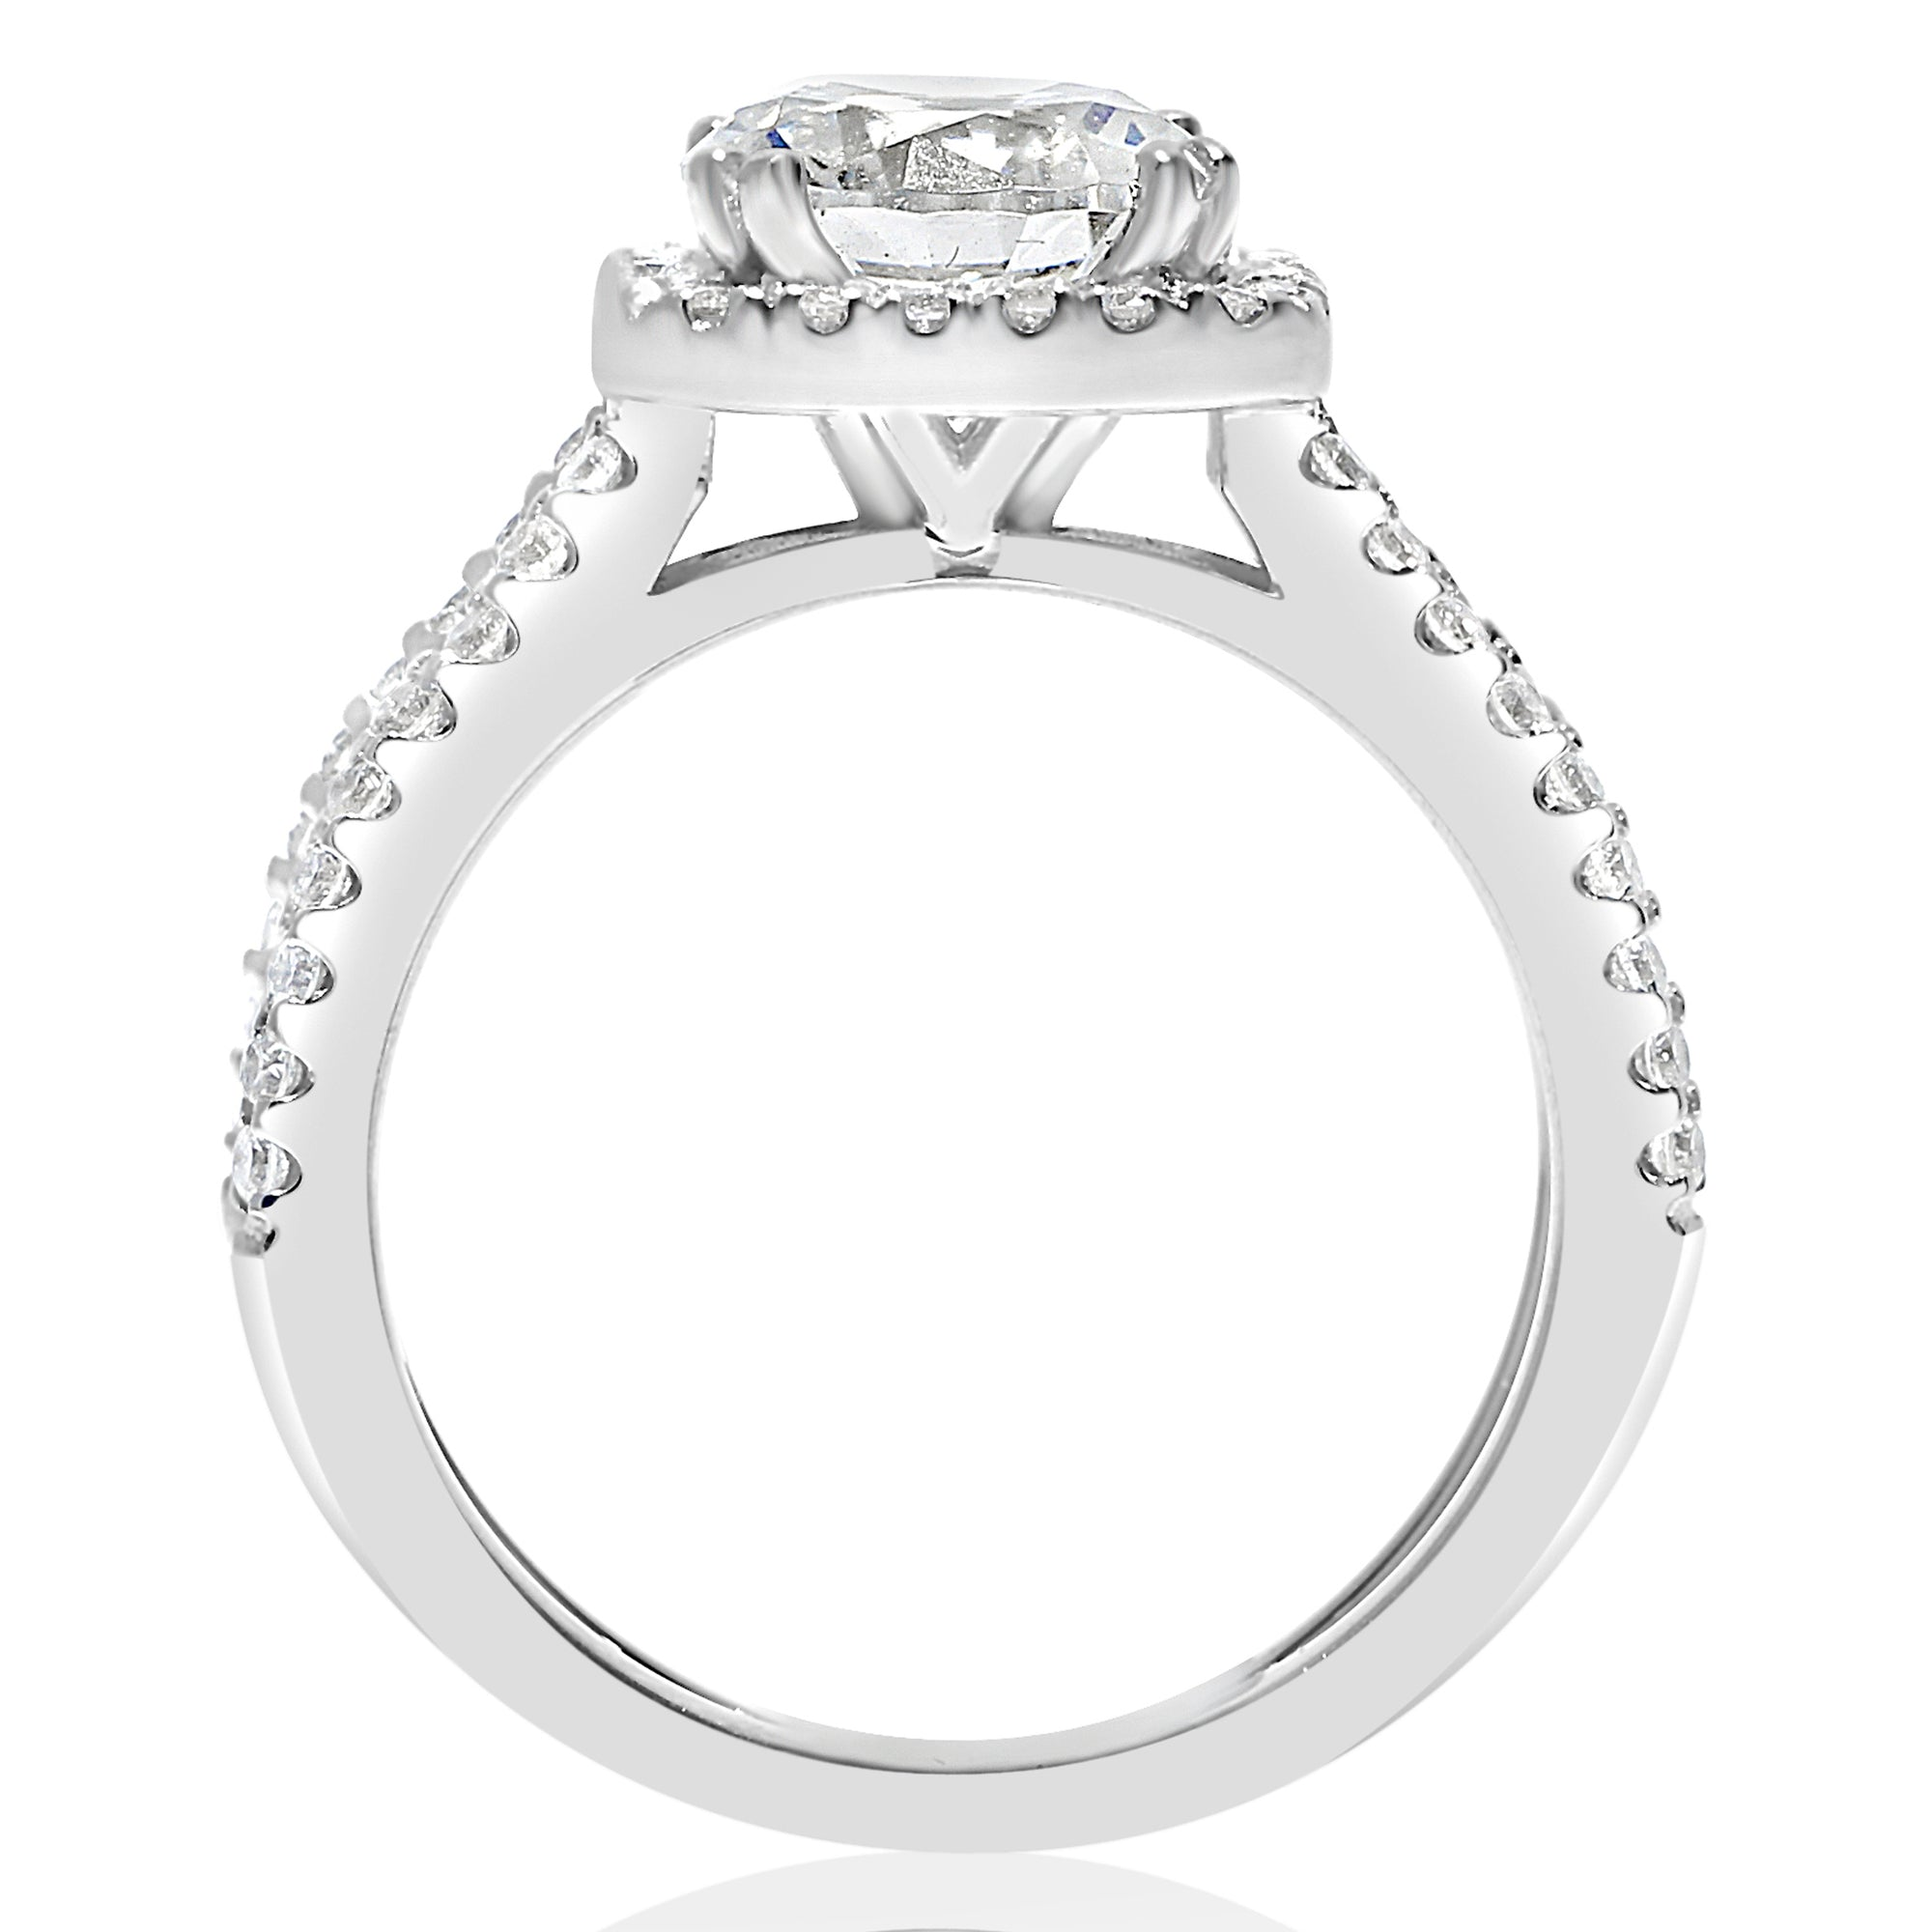 white ring showcase goldsmiths engagement diamond rings rounded mccaul solitaire contemporary